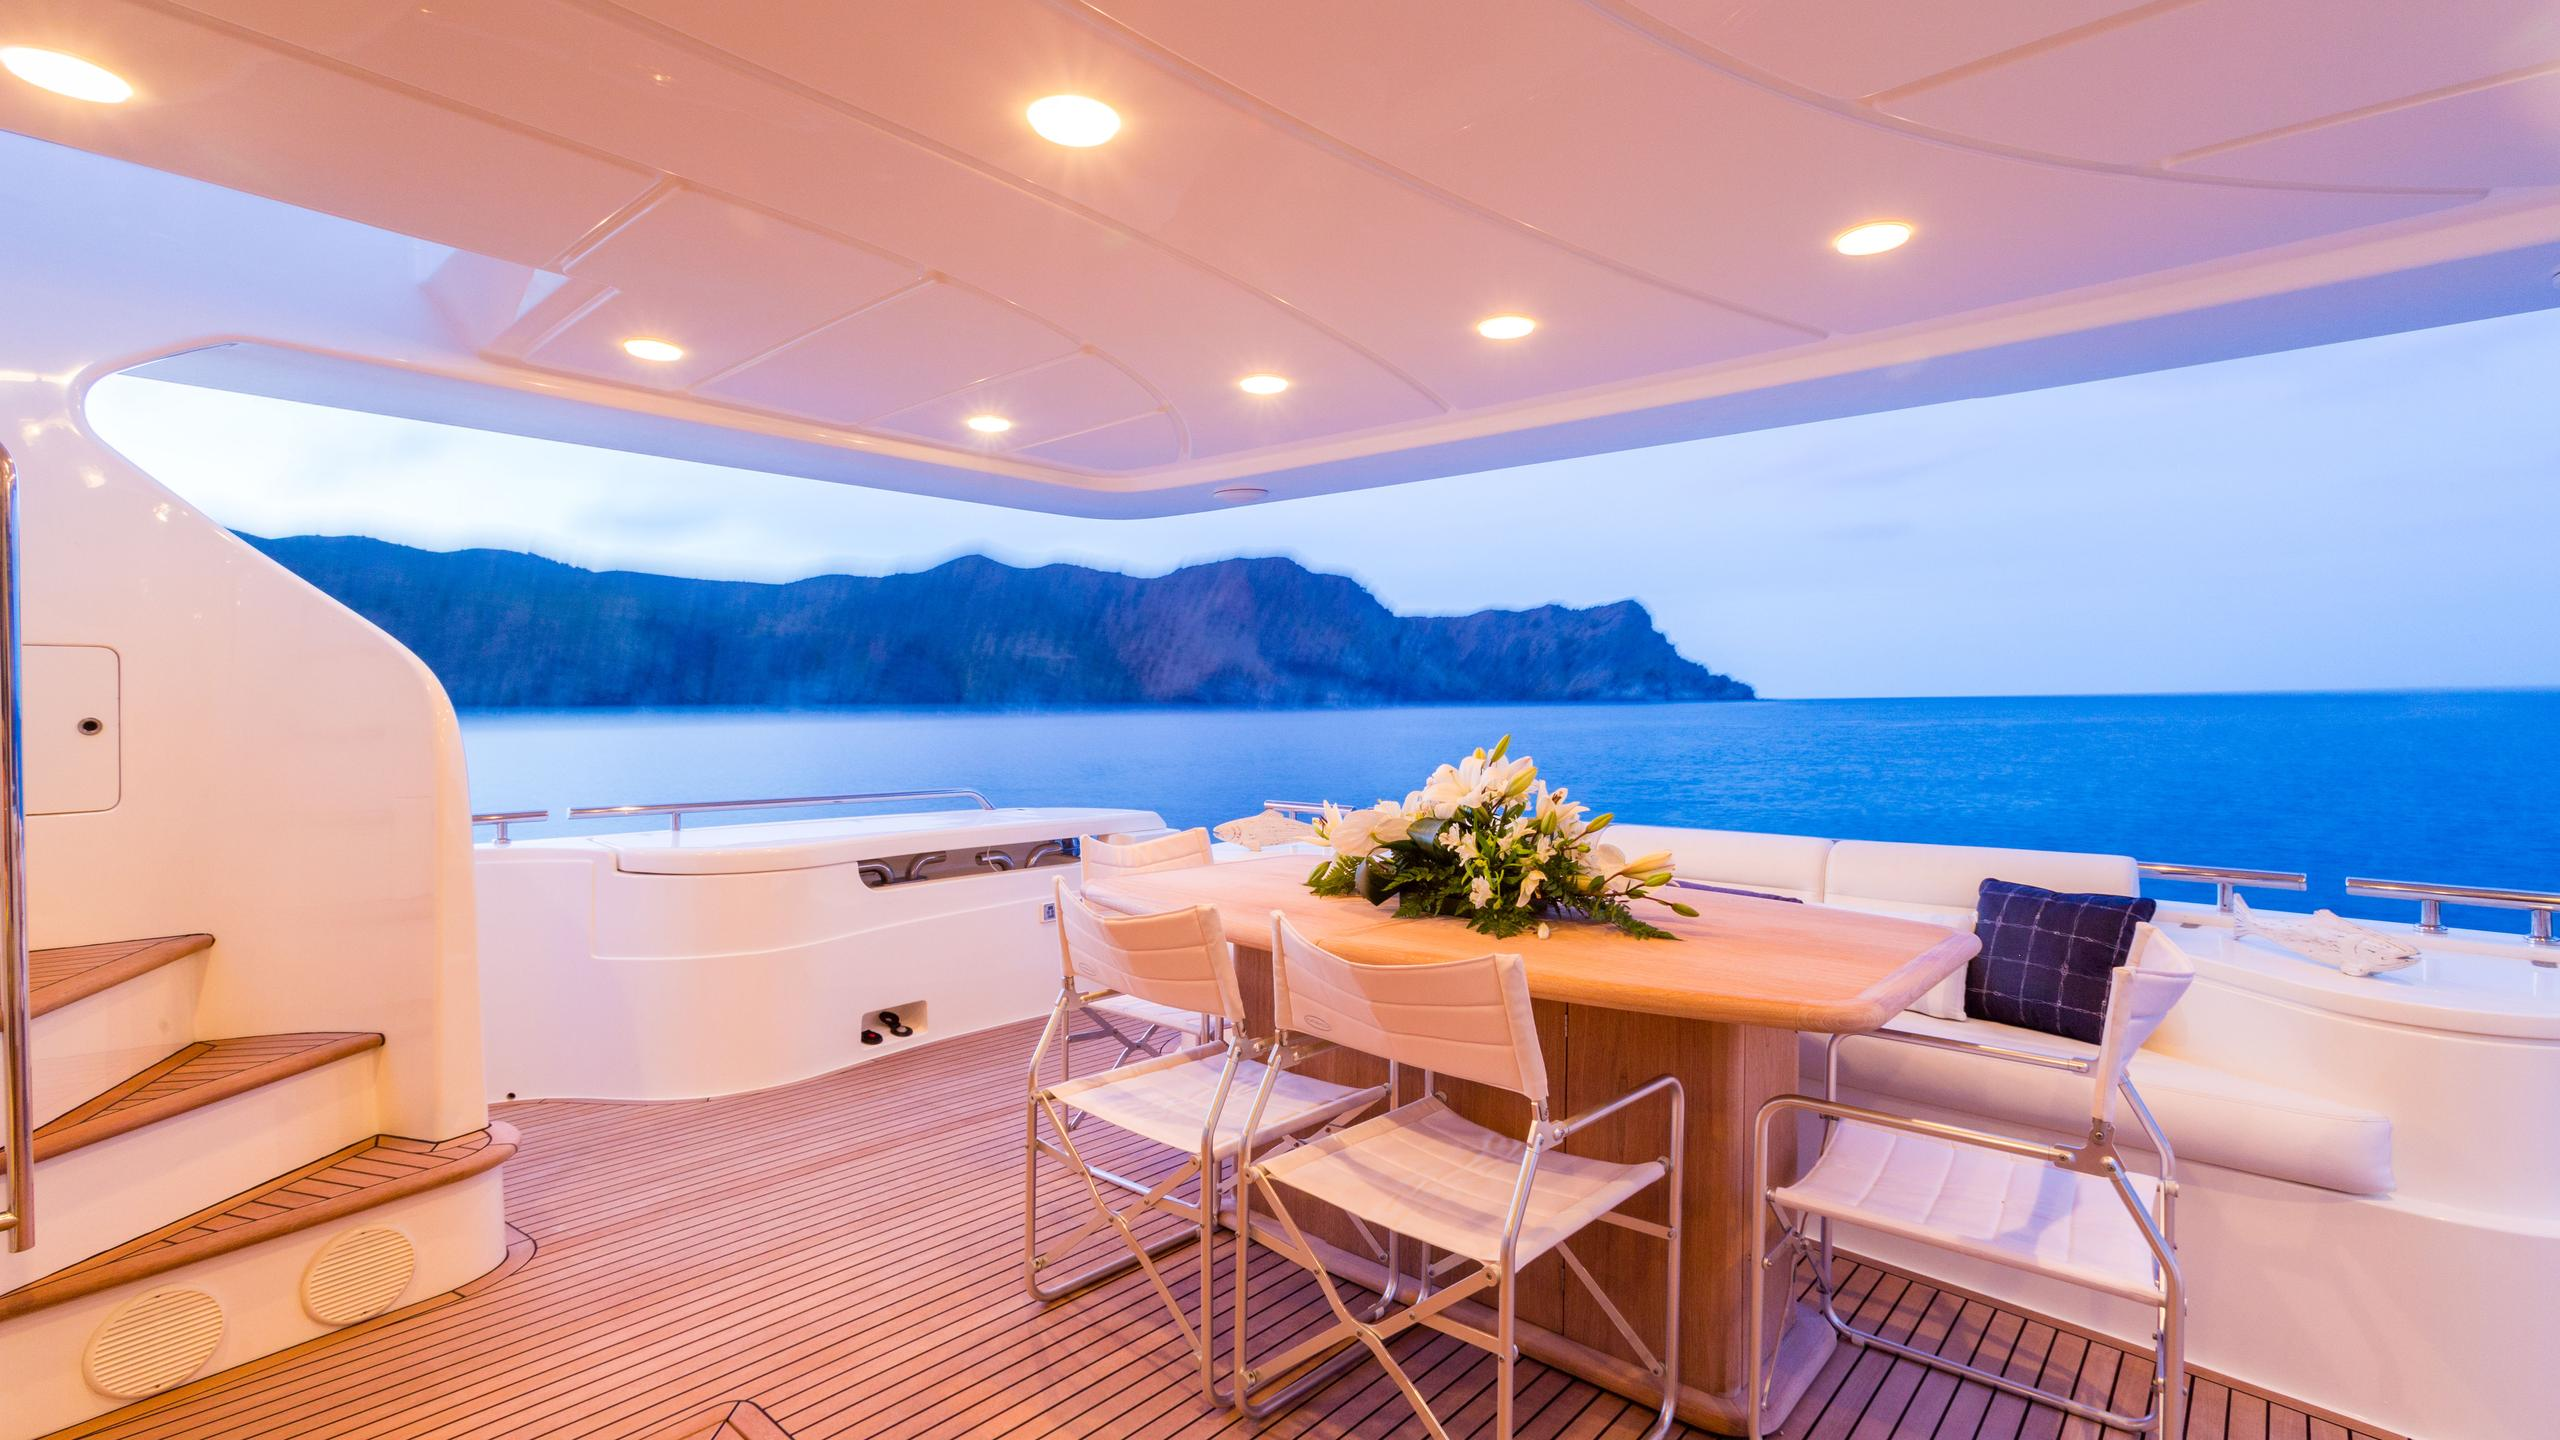 monticello-ii-yacht-aft-dining